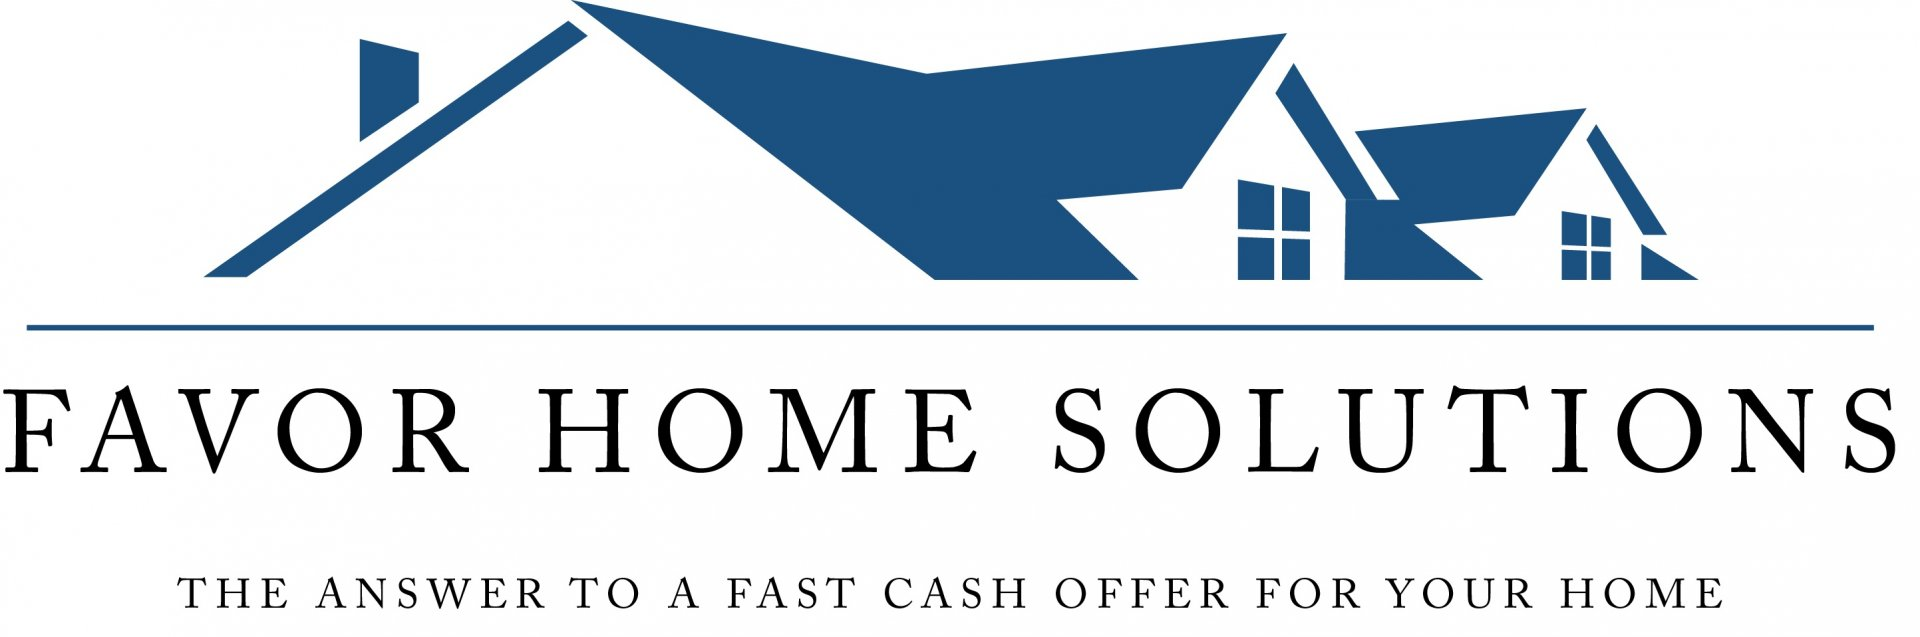 Favor Home Solutions, LLC logo